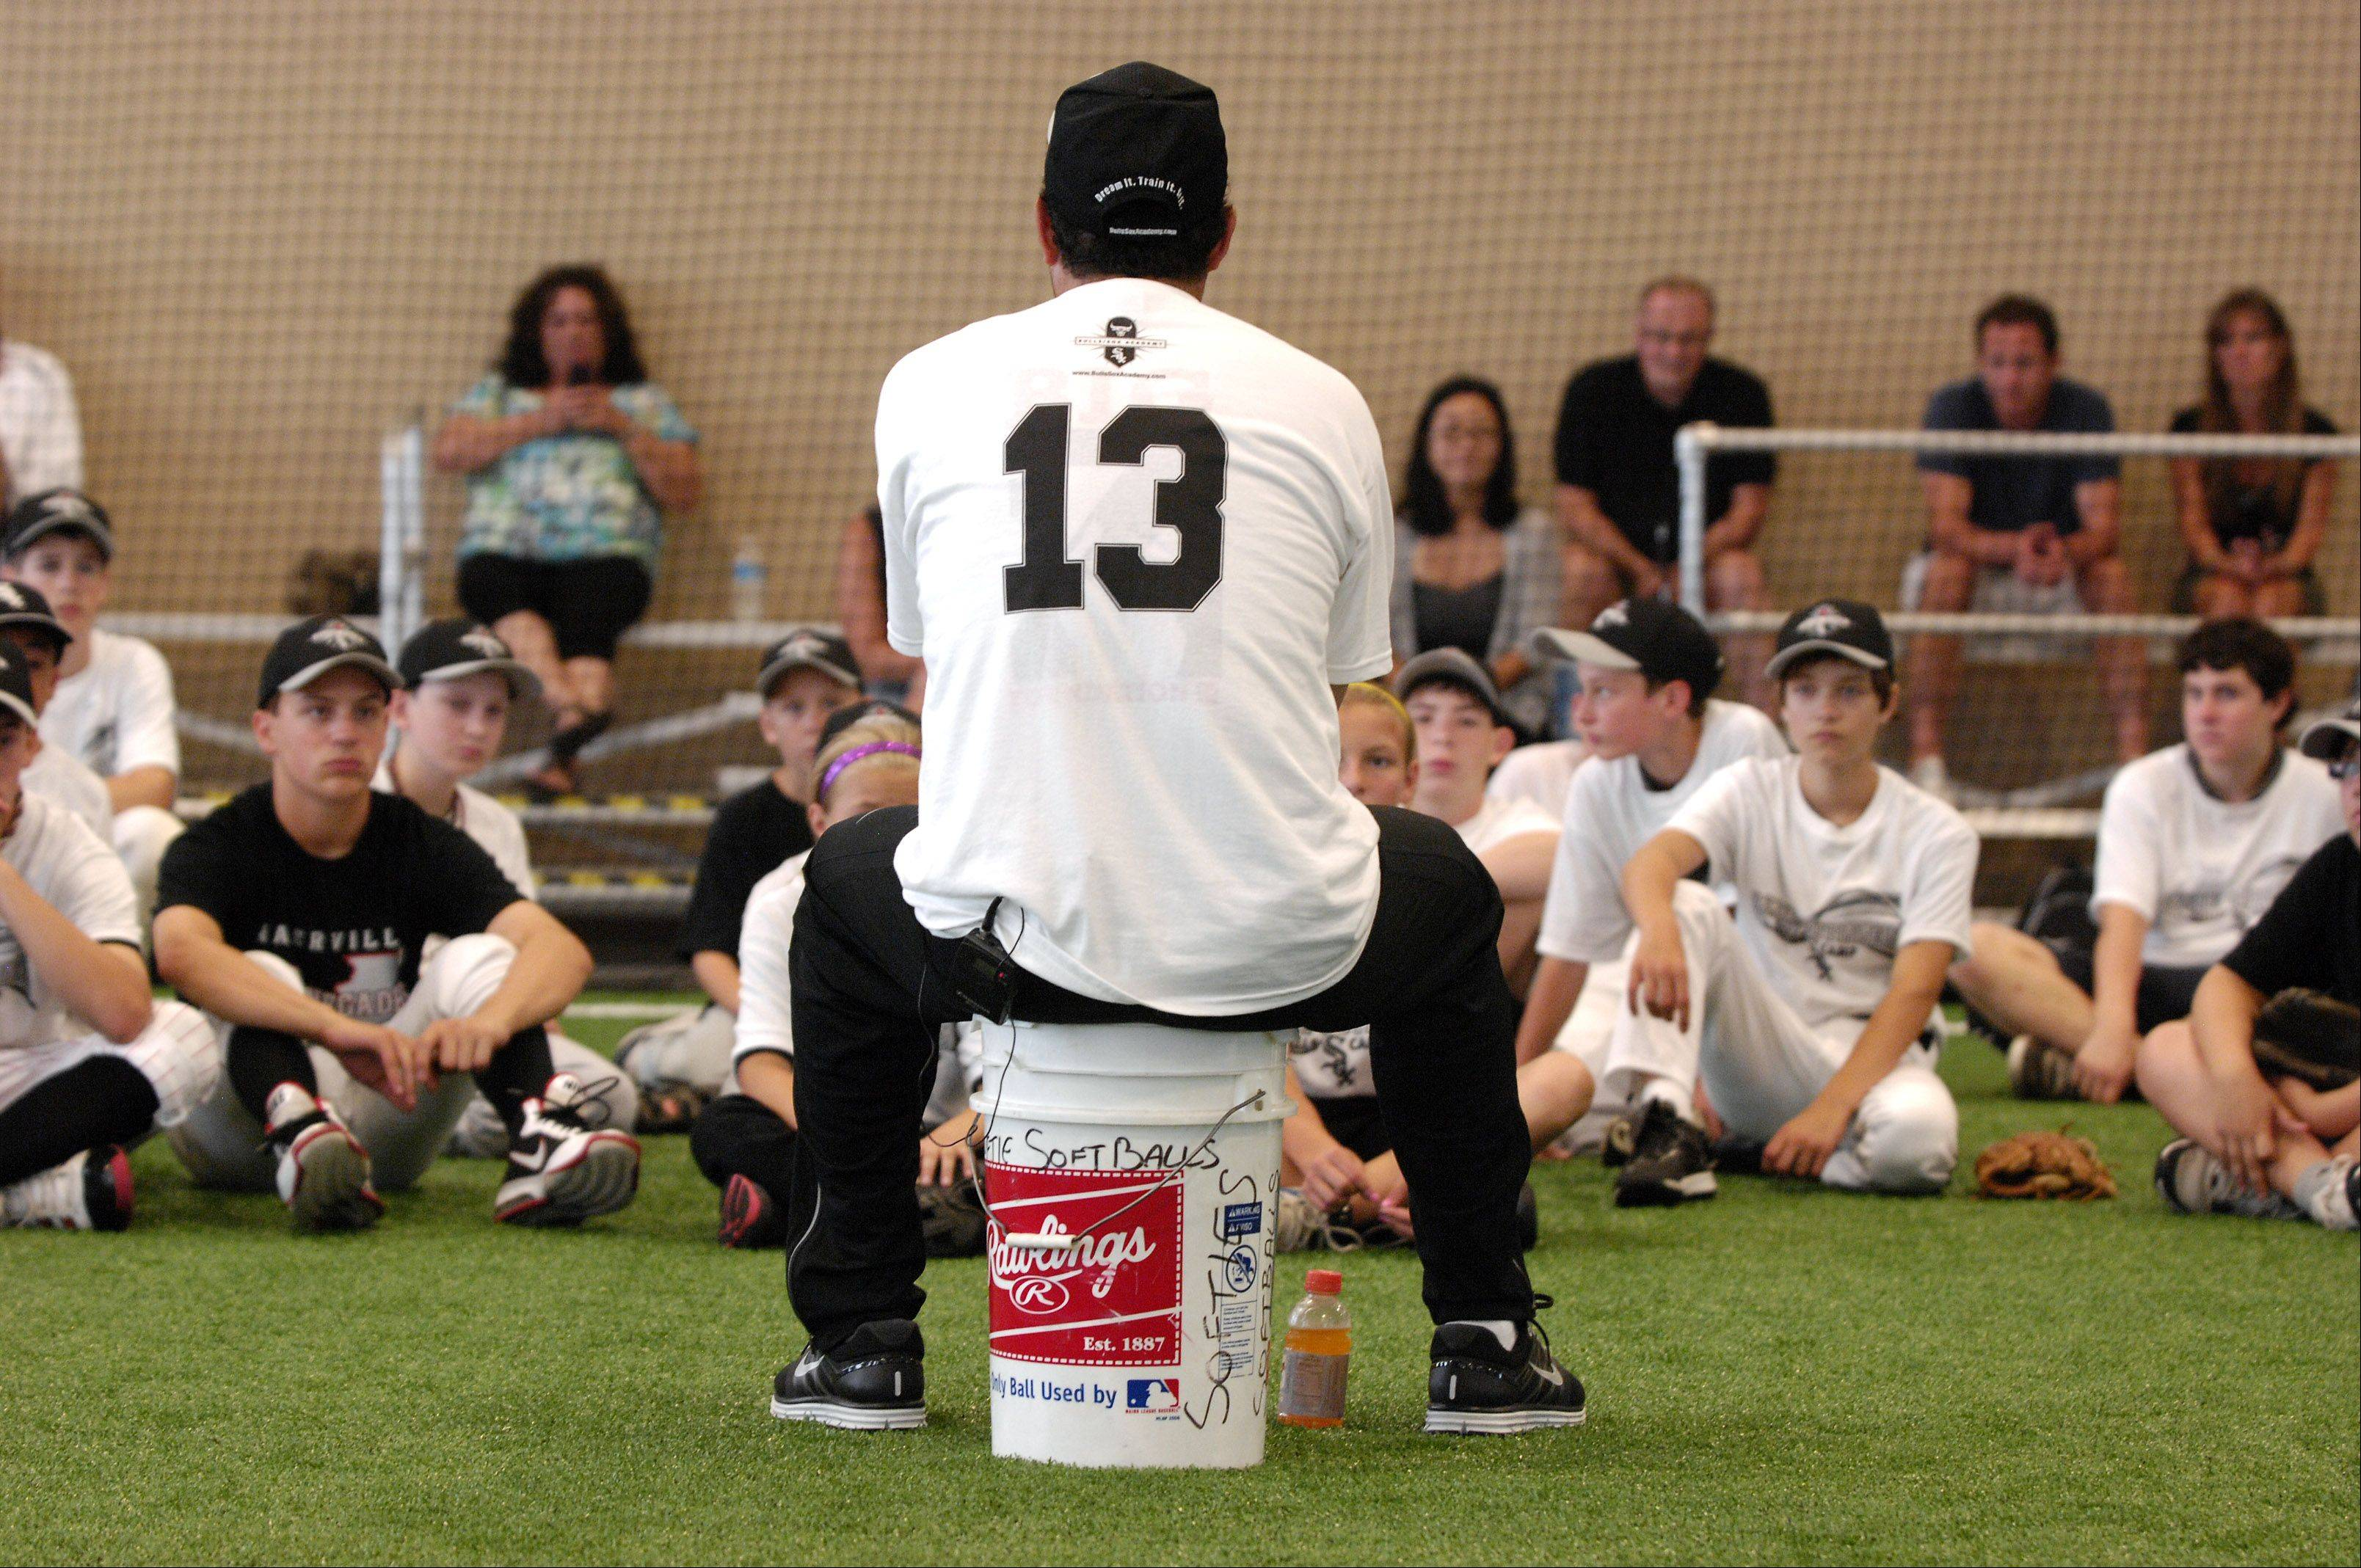 Chicago White Sox manager Ozzie Guillen gives some words of wisdom to kids attending the Bulls/Sox Academy in Glen Ellyn. Guillen had spent the morning working on baseball skills with the kids.